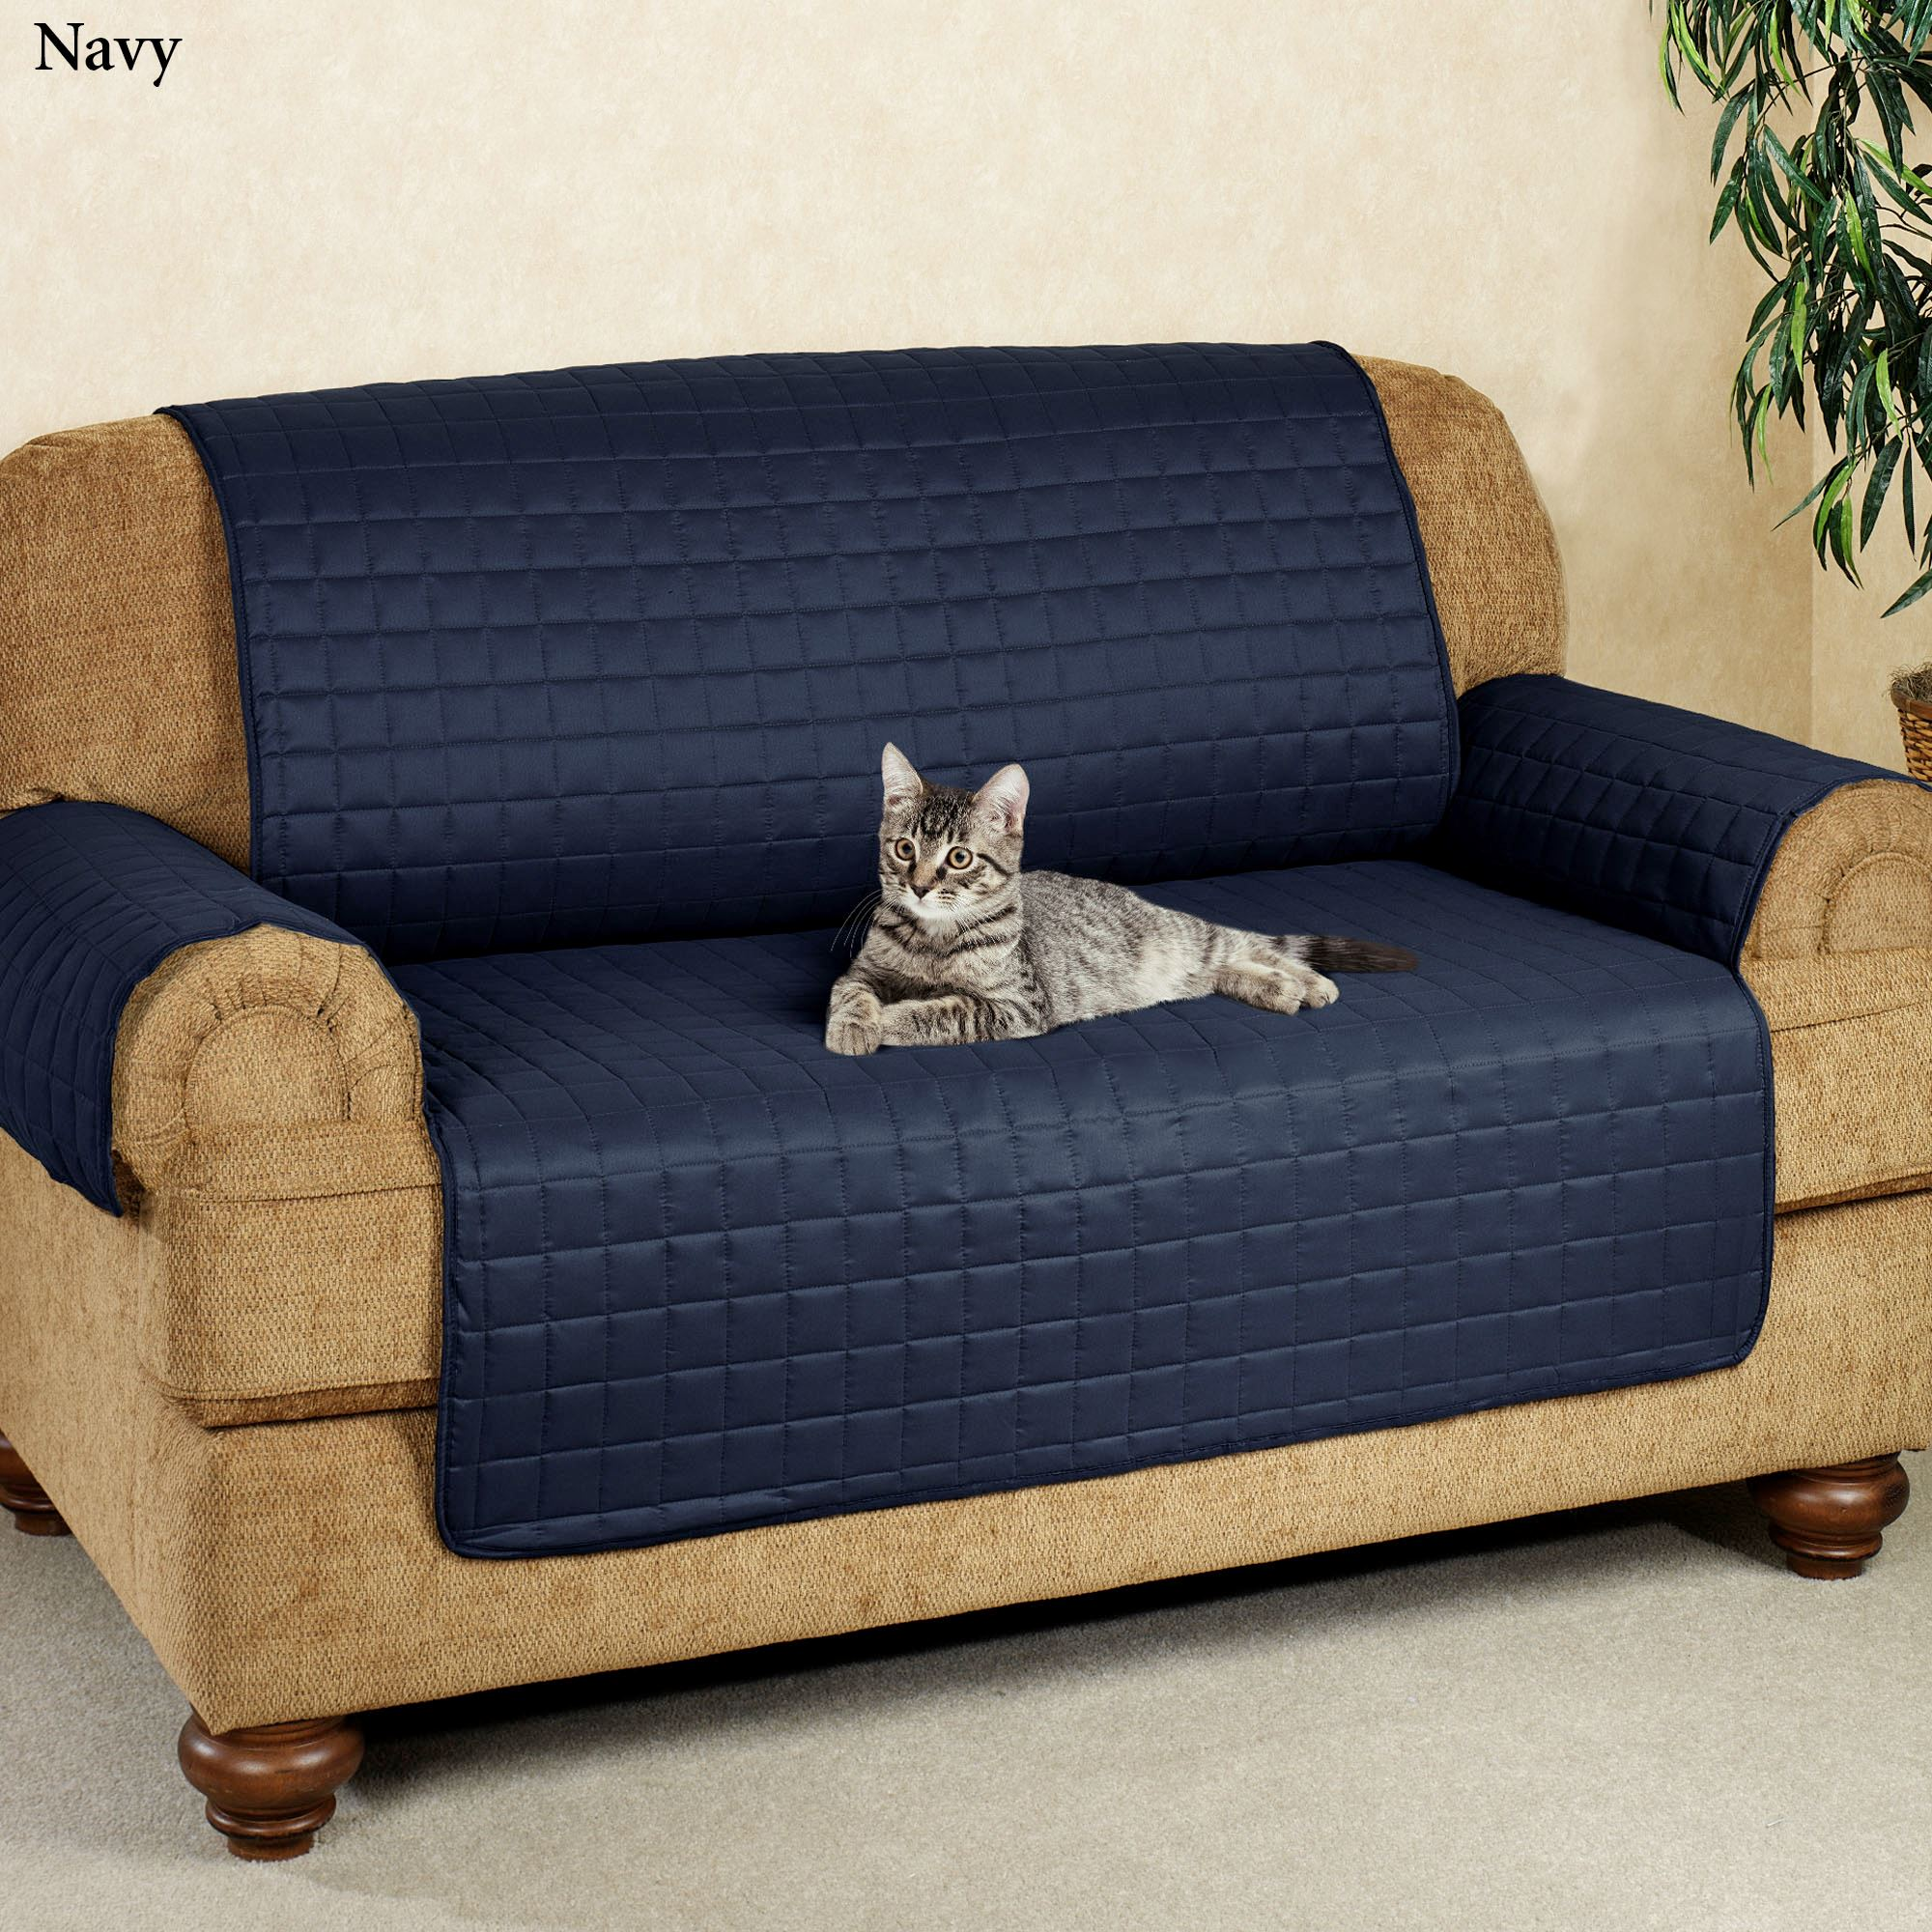 navy blue pet sofa cover cleaning microsuede microfiber furniture covers with tuck in flaps